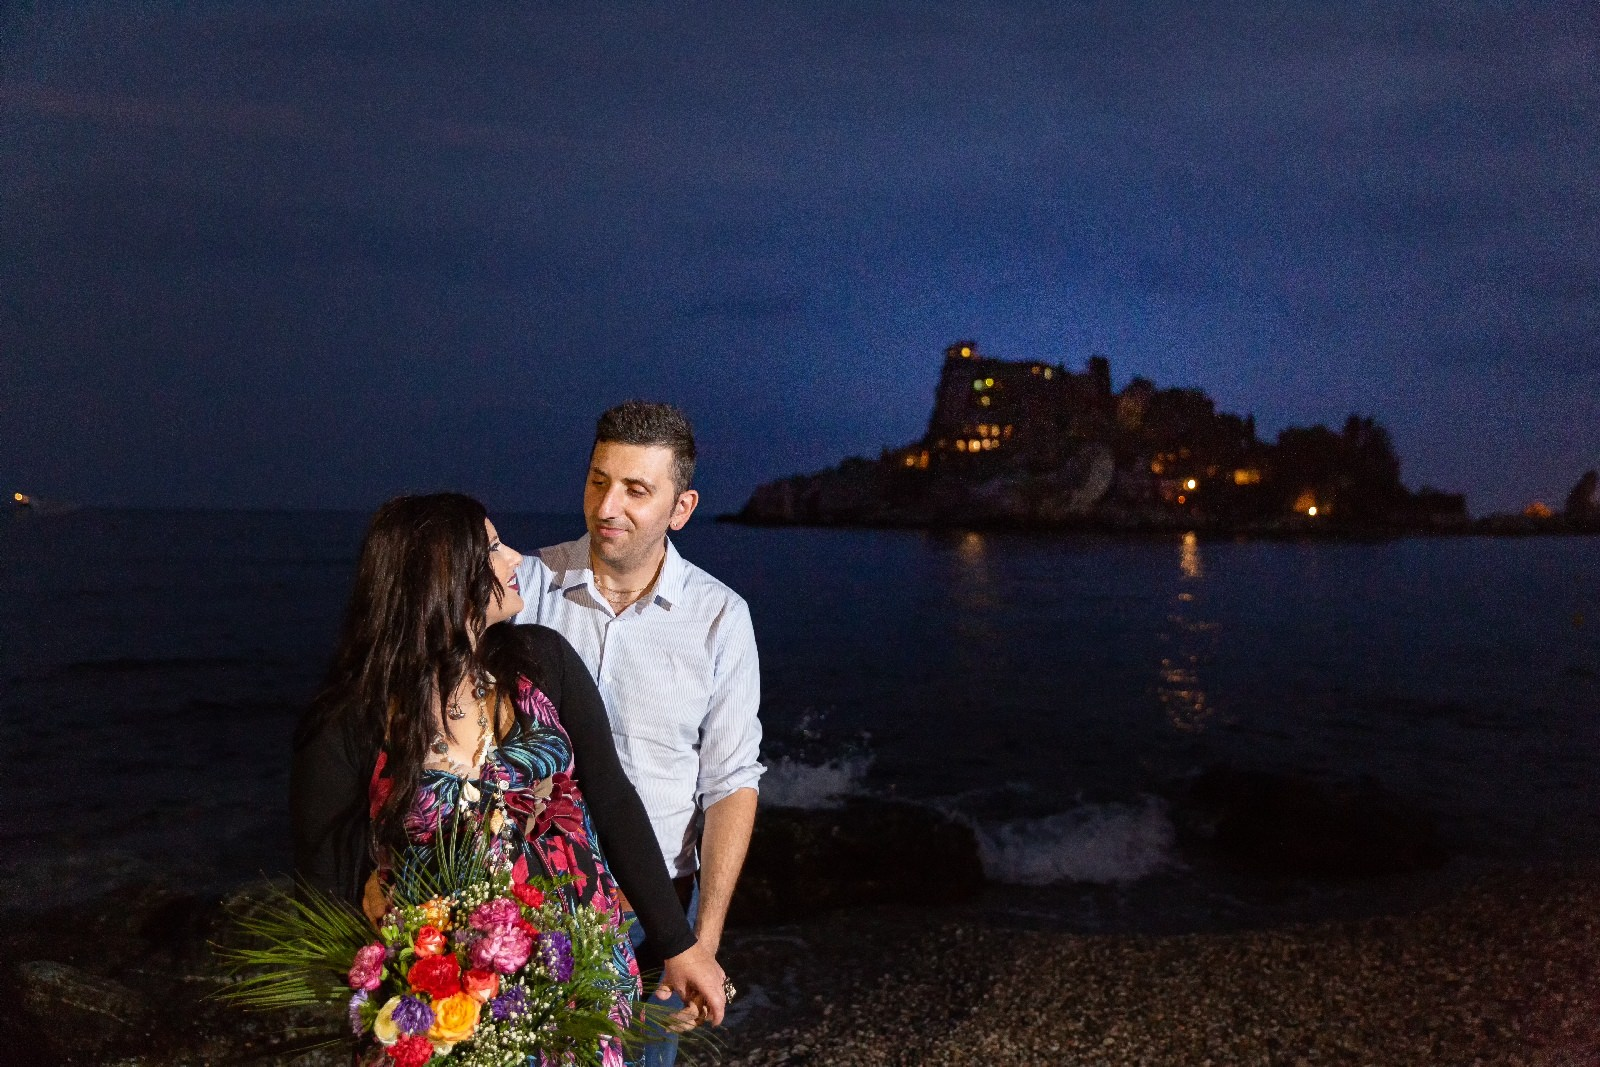 155-2018-09-22-Engagement-Alessandra-e-Igor-Pizzone-5DE-205-Edit